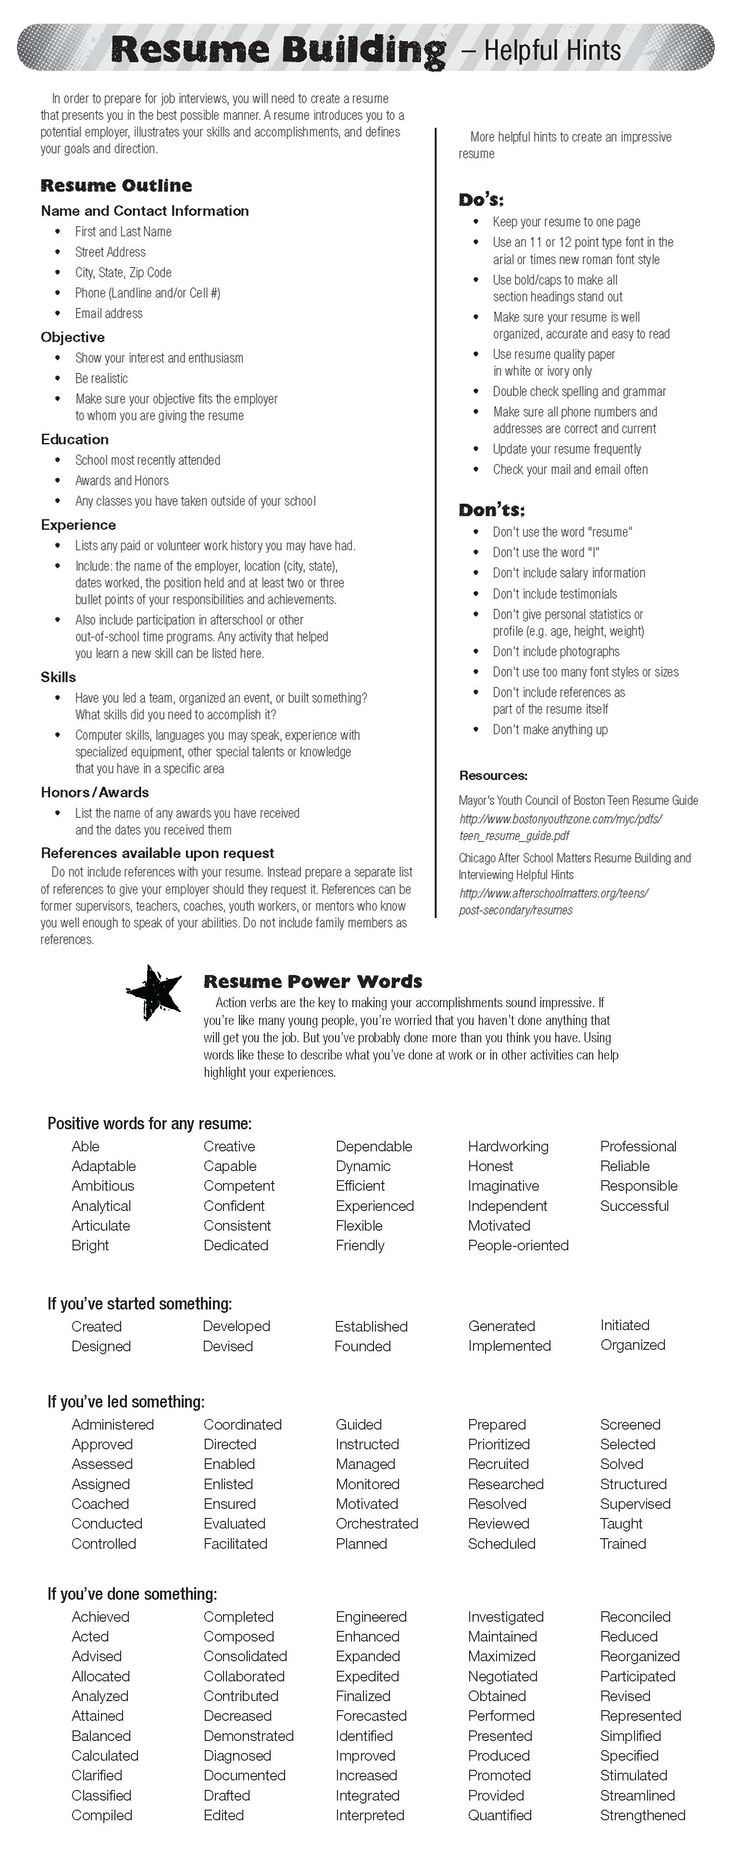 Opposenewapstandardsus  Fascinating  Ideas About Resume On Pinterest  Cv Format Resume Cv And  With Handsome  Ideas About Resume On Pinterest  Cv Format Resume Cv And Resume Templates With Amazing Reference Template For Resume Also Example Of Objective In Resume In Addition Basketball Resume And High School Resume No Work Experience As Well As Resume Summary Sample Additionally Resume Rabbit Review From Pinterestcom With Opposenewapstandardsus  Handsome  Ideas About Resume On Pinterest  Cv Format Resume Cv And  With Amazing  Ideas About Resume On Pinterest  Cv Format Resume Cv And Resume Templates And Fascinating Reference Template For Resume Also Example Of Objective In Resume In Addition Basketball Resume From Pinterestcom